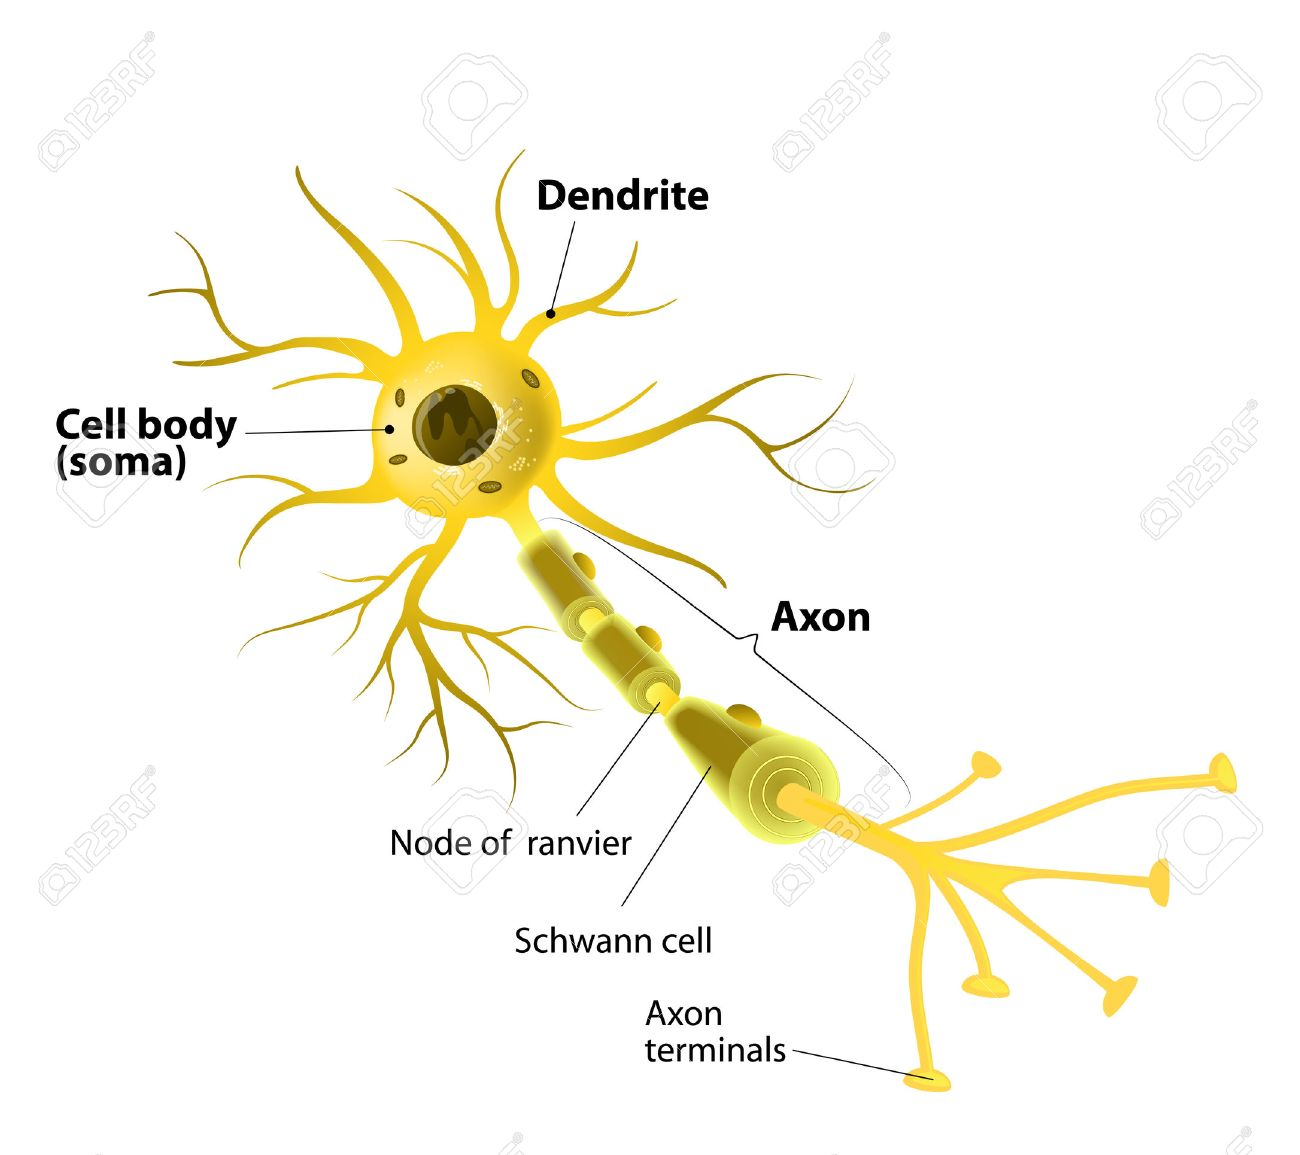 neuron and synapse labeled diagram royalty free cliparts, vectors